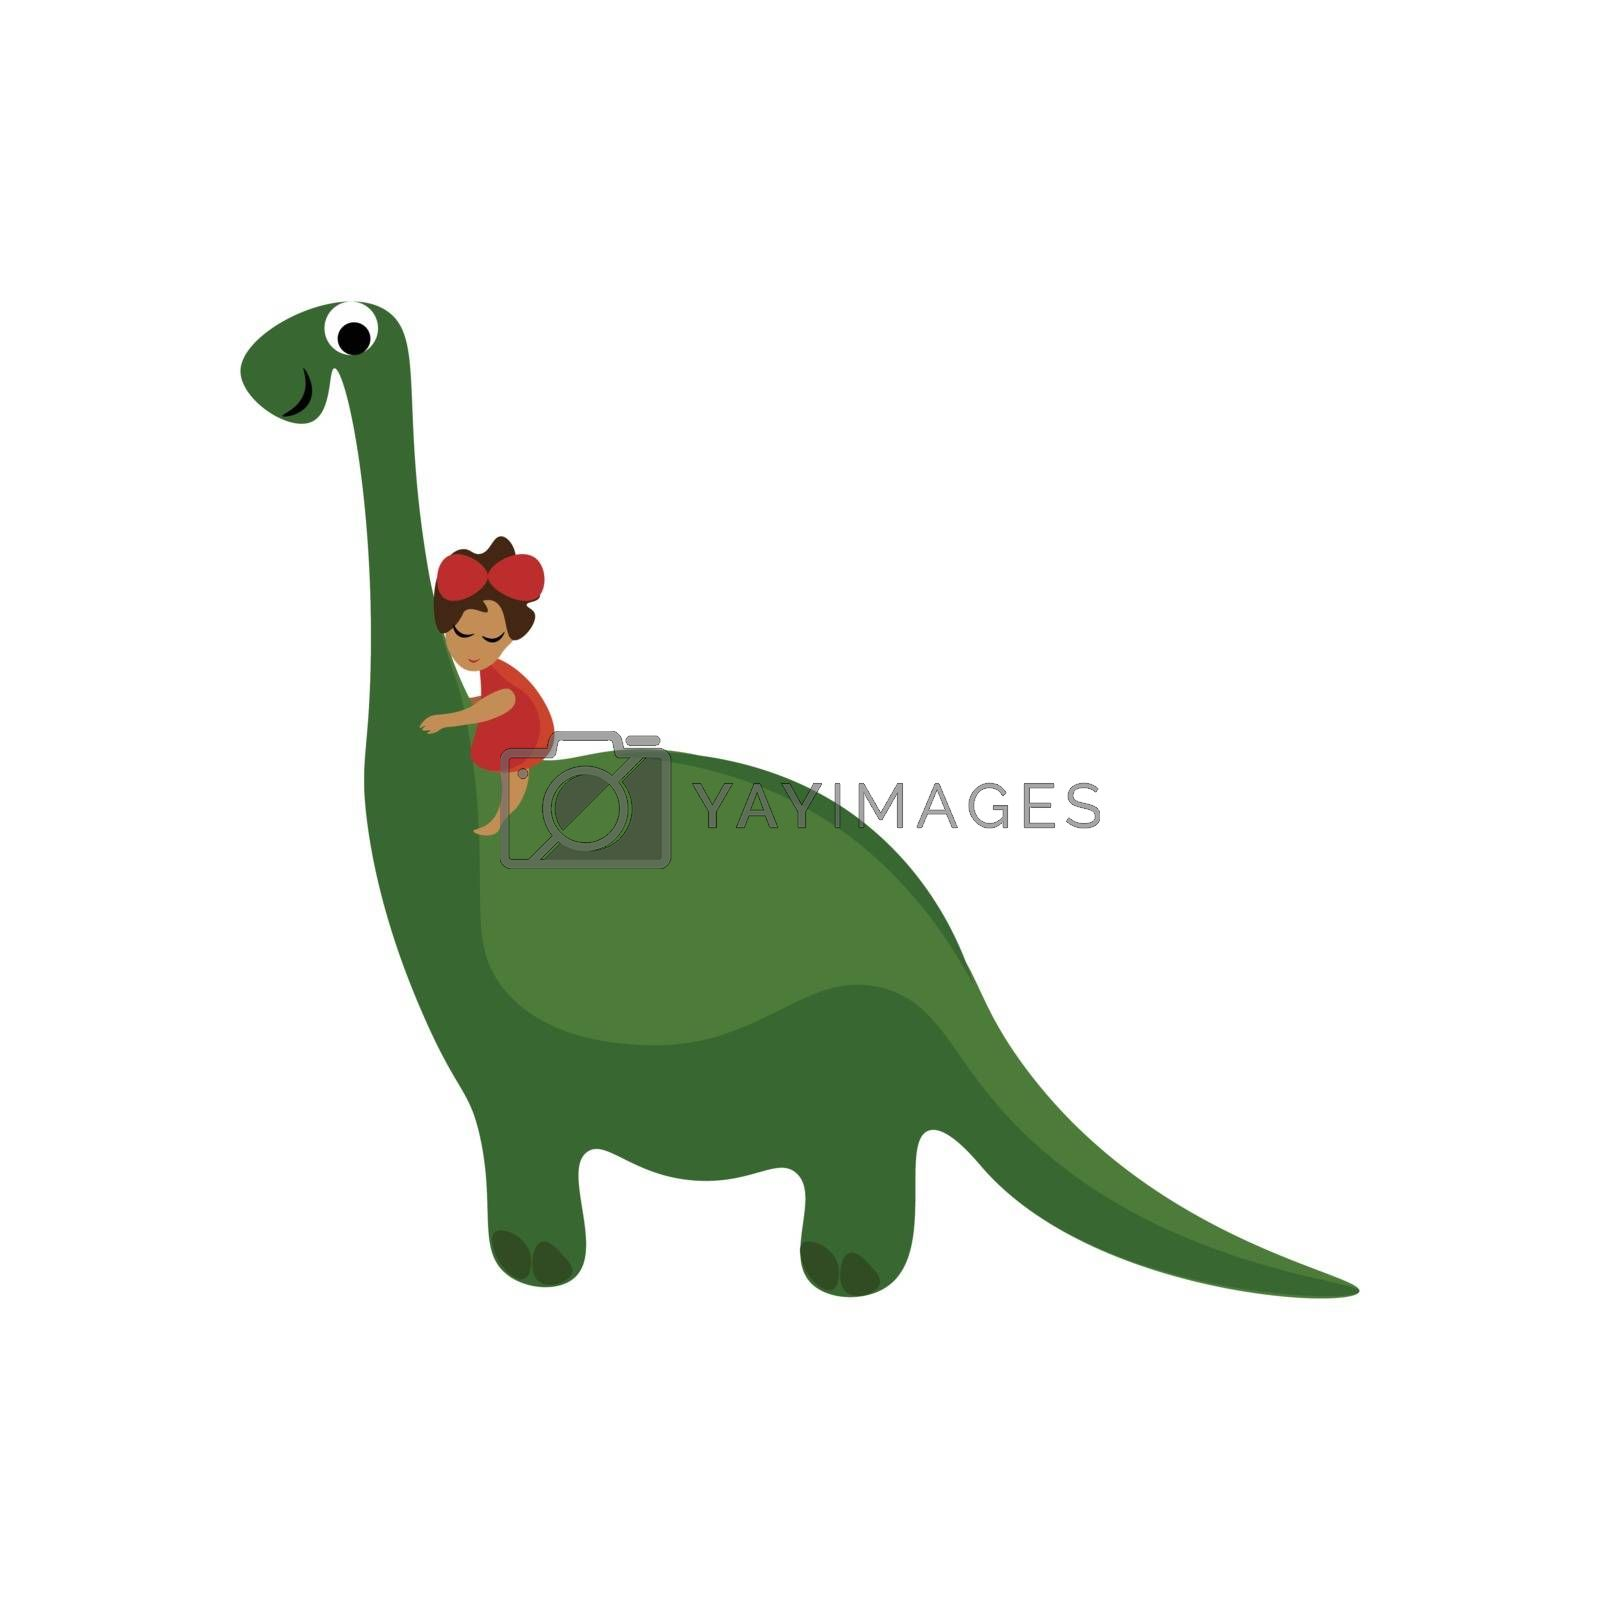 Royalty free image of Cartoon funny picture of a cute little girl riding on a big gree by Morphart